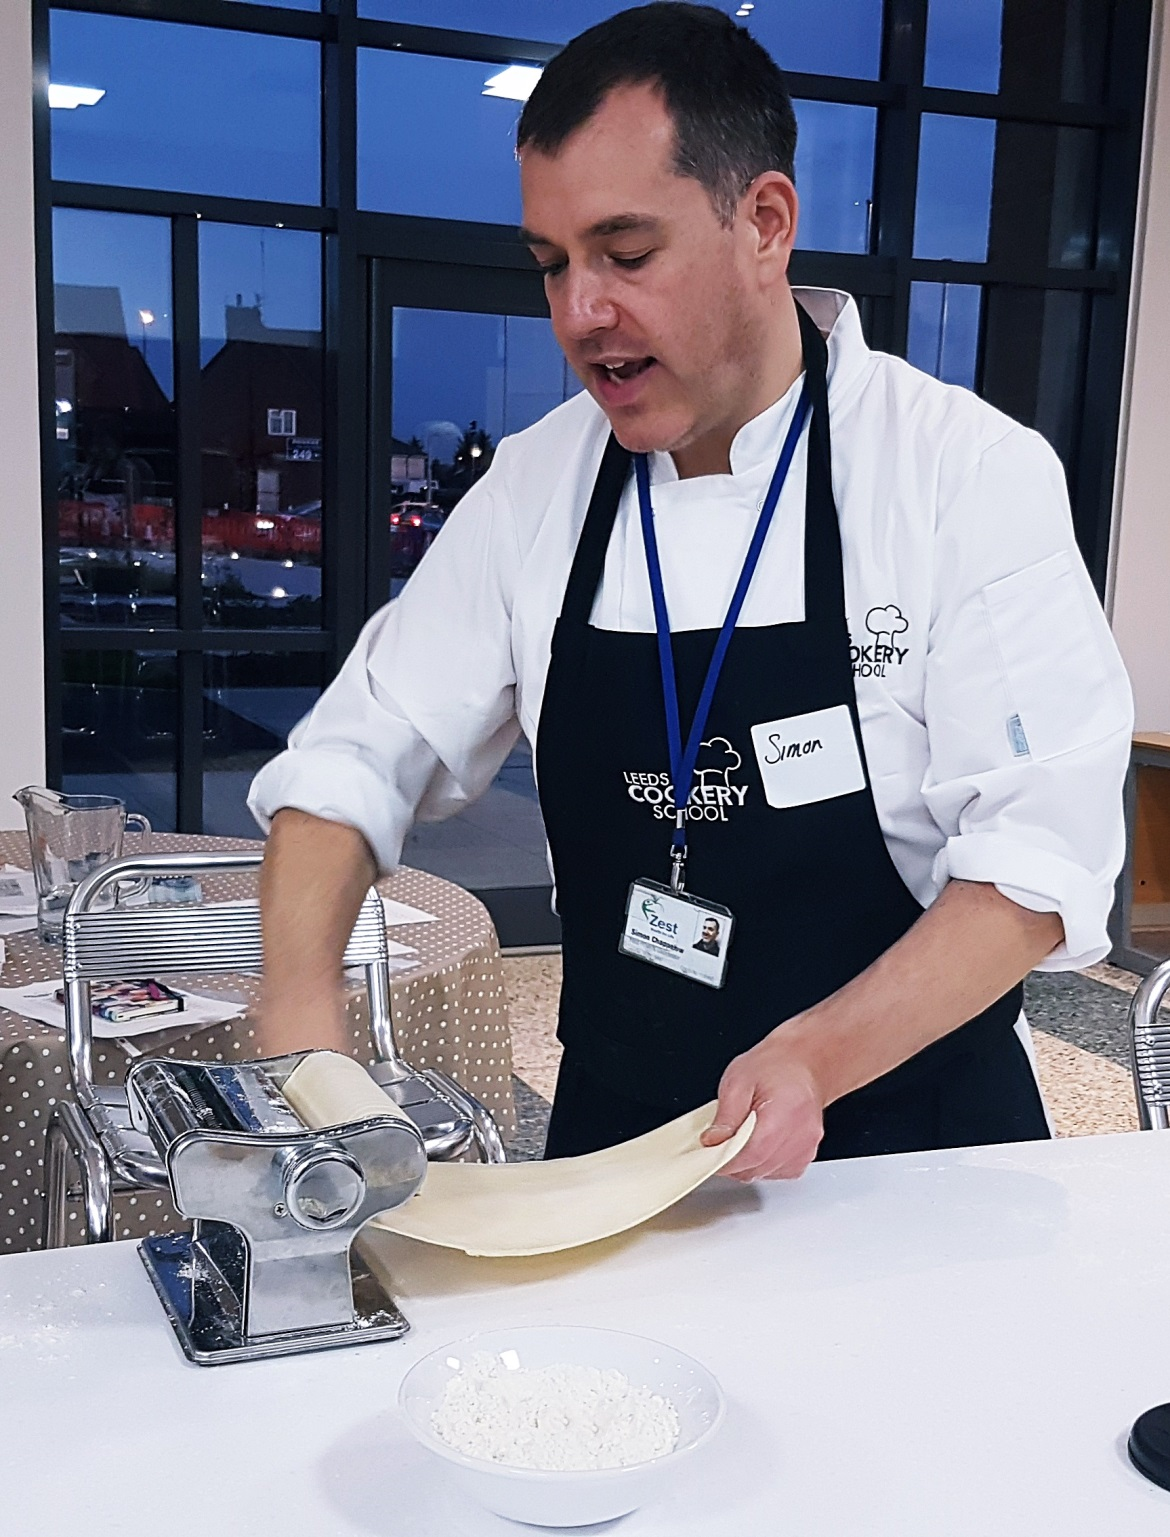 Rolling out pasta dough - Leeds Cookery School review by BeckyBecky Blogs